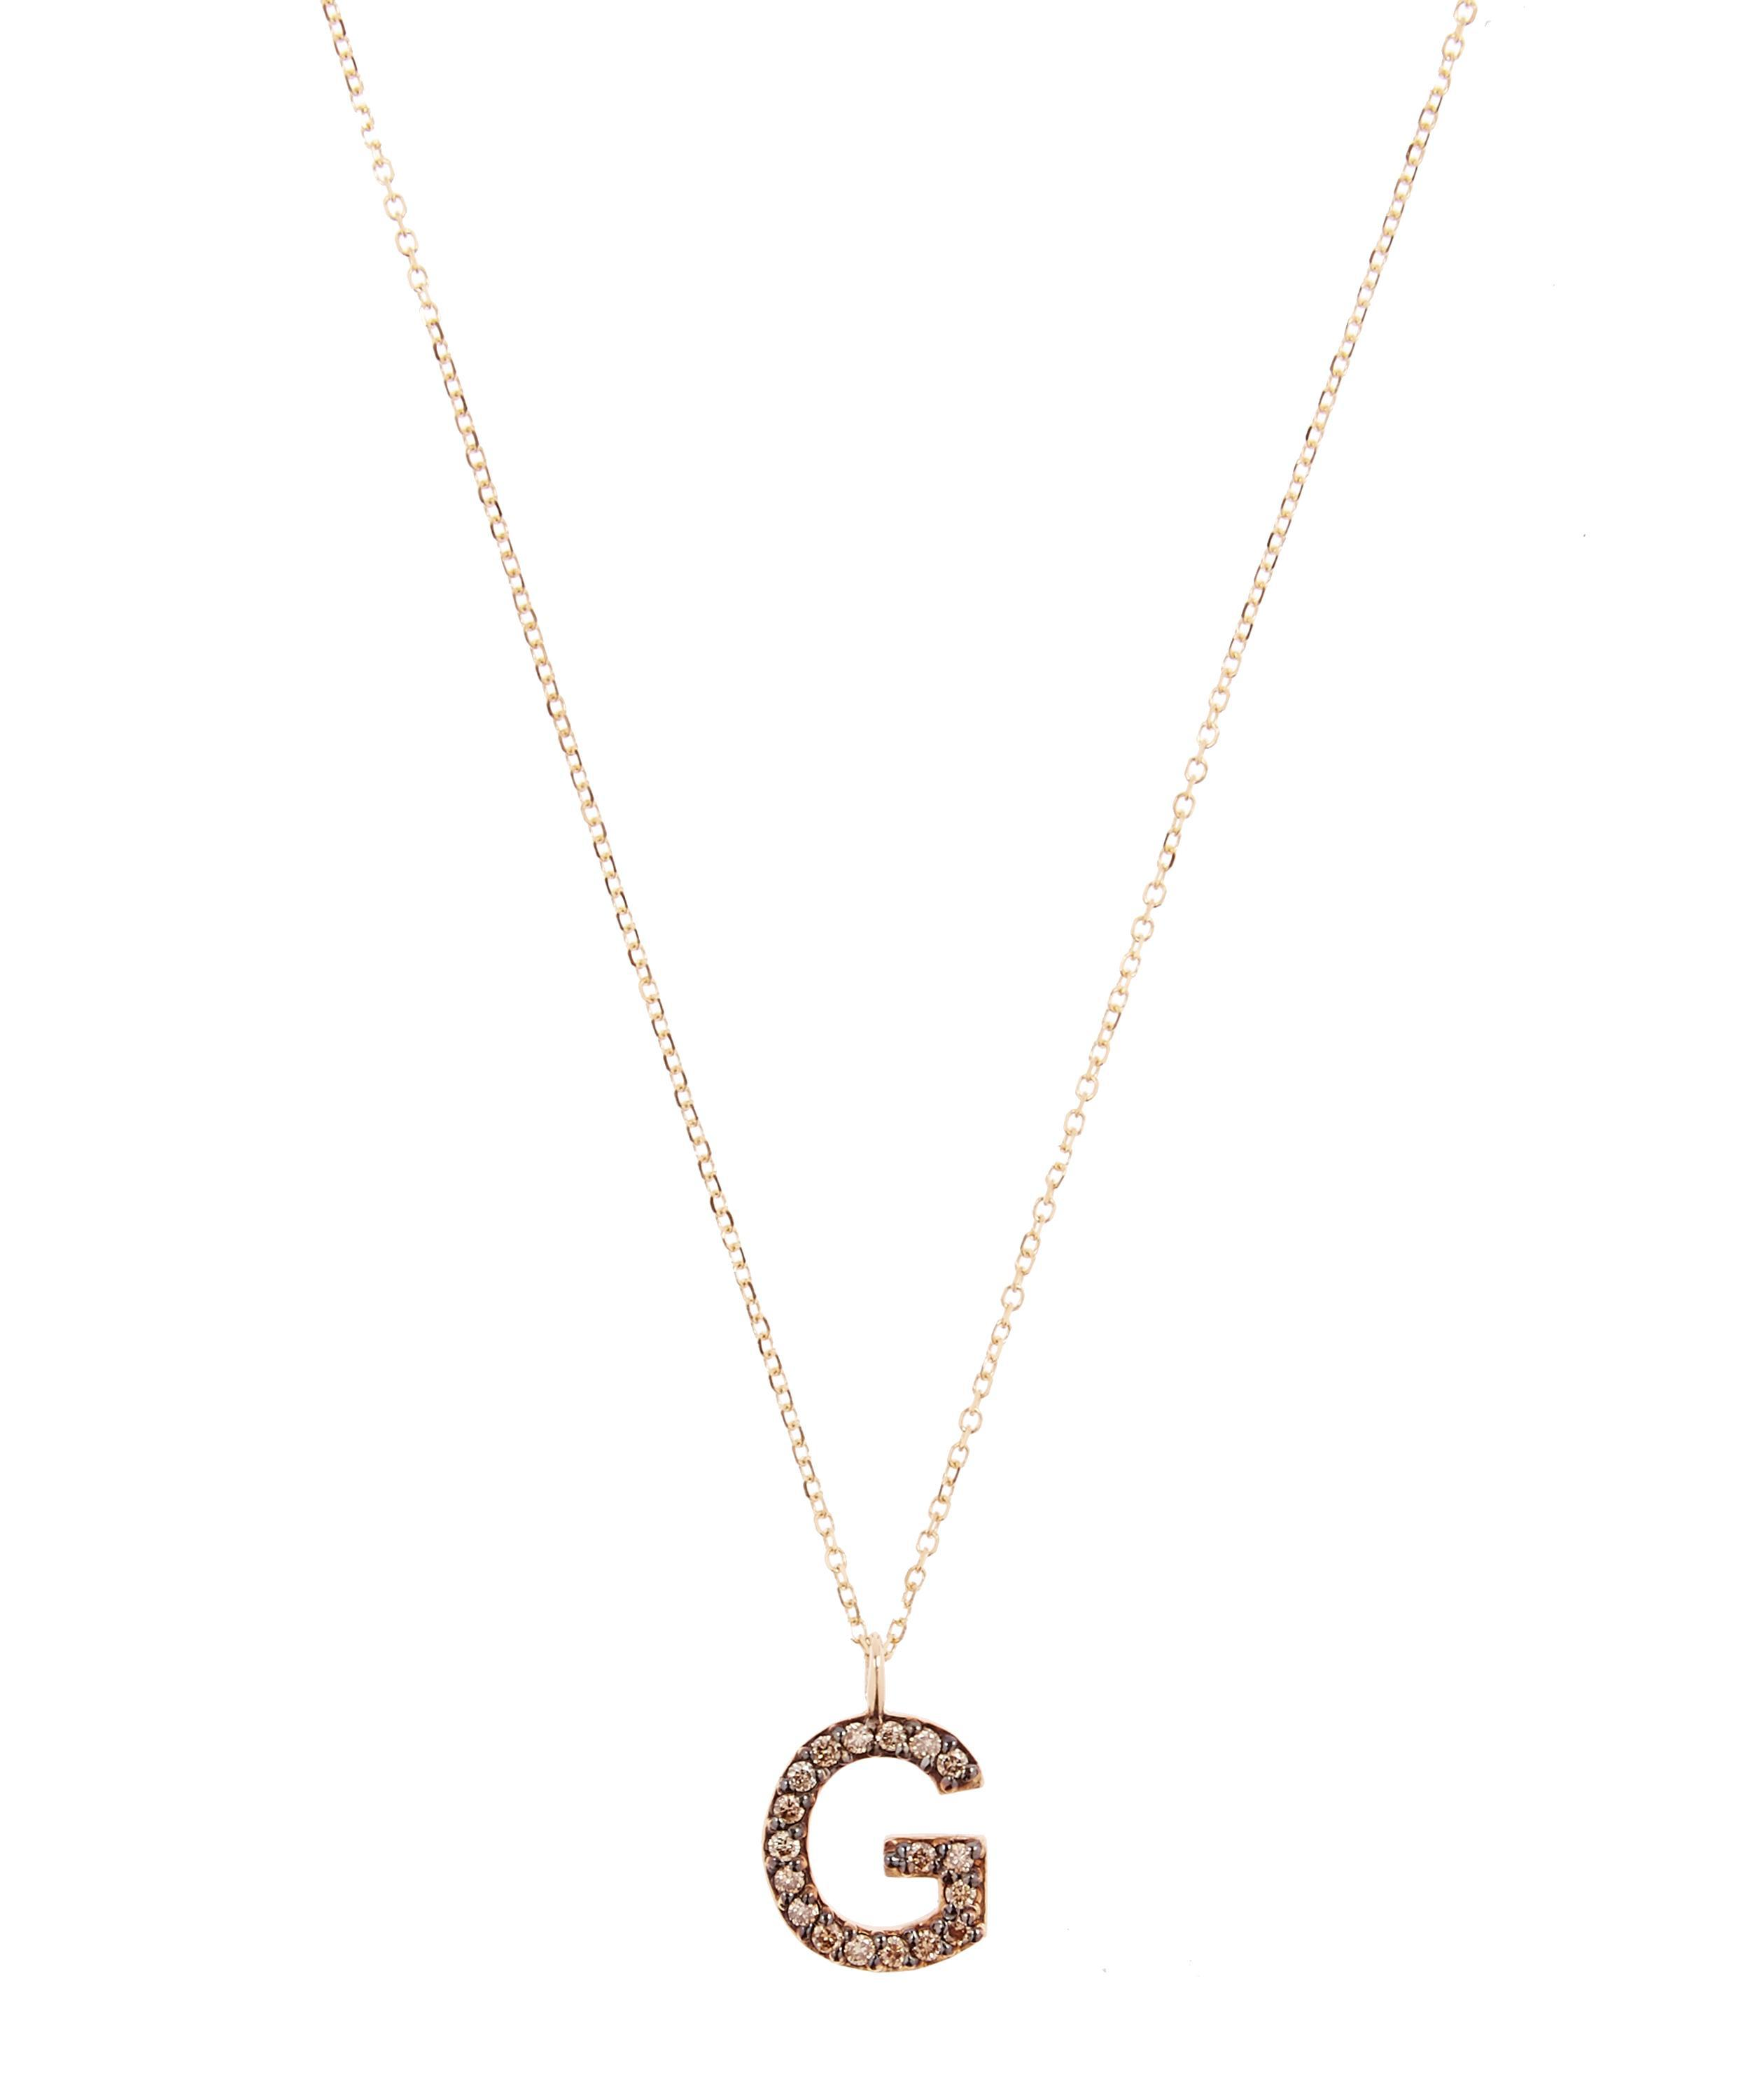 pendant necklaces necklace matte g studio e feather letter jewelry products gold b browse